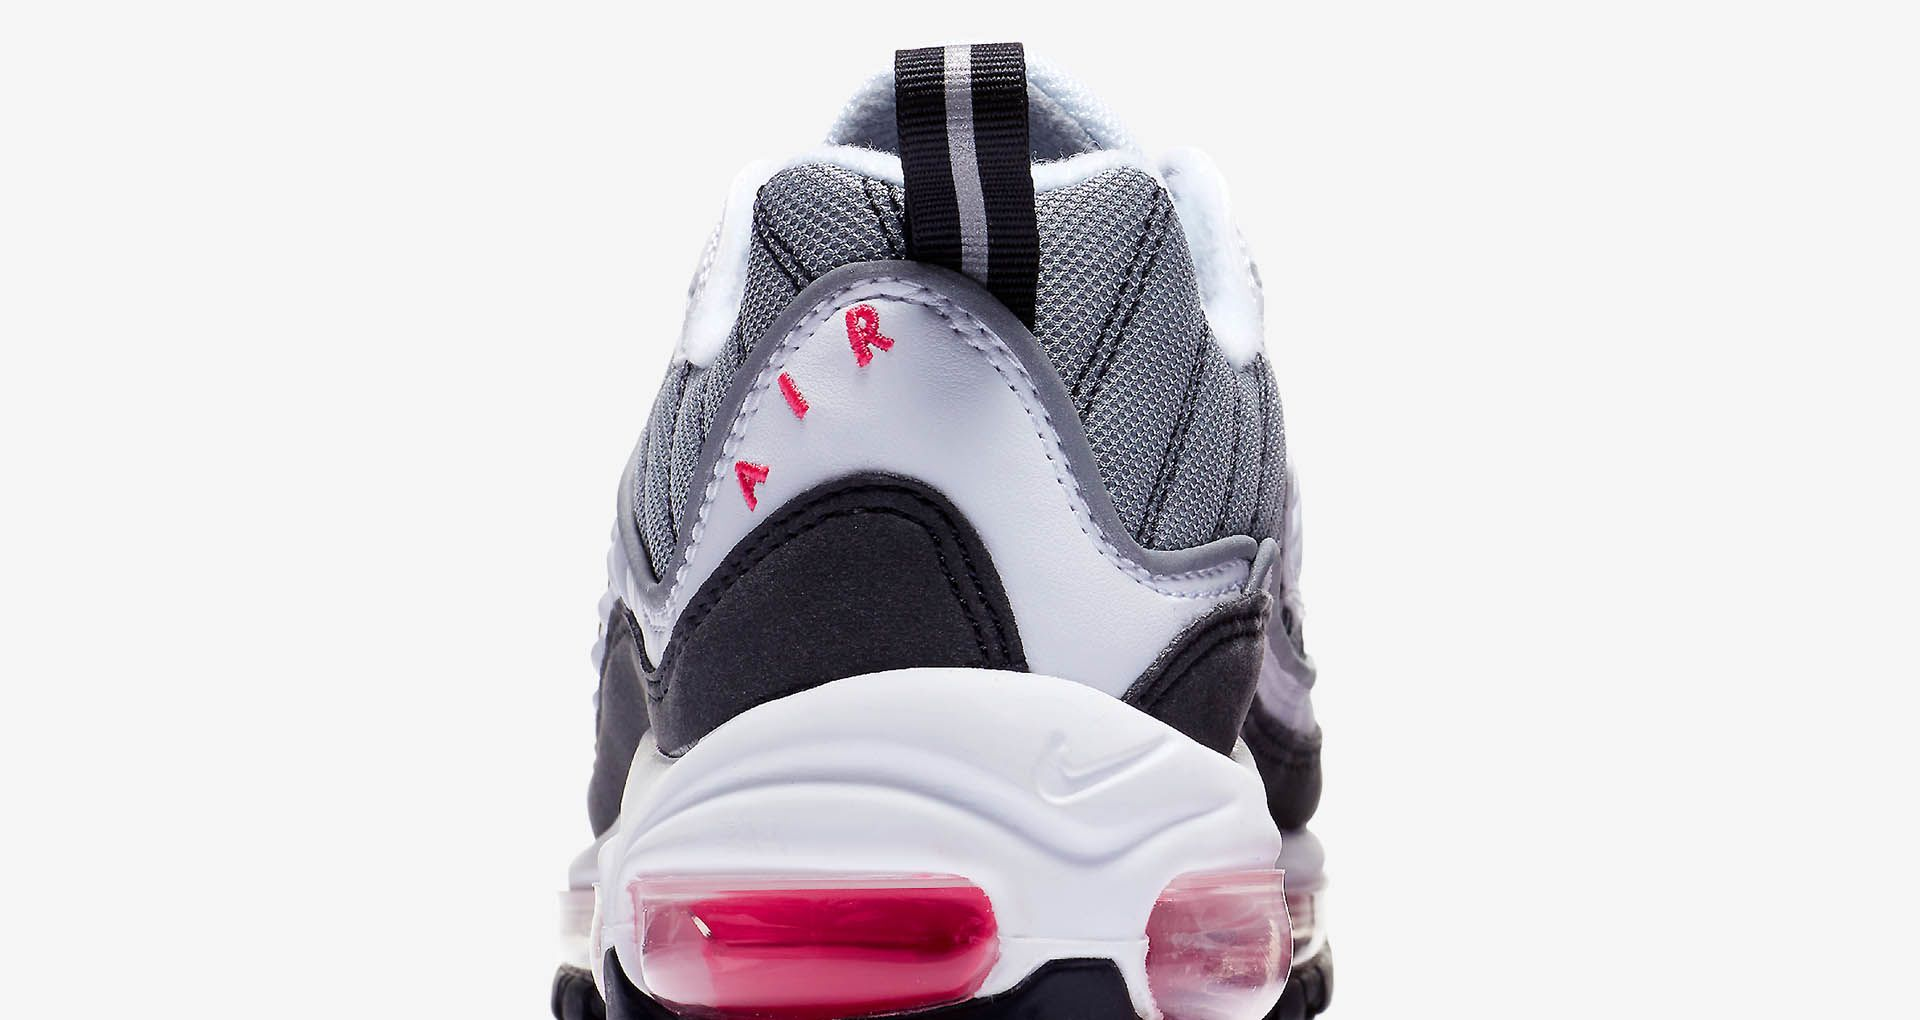 887698bd5b Nike Women's Air Max 98 'White & Solar Red & Reflect Silver' Release Date